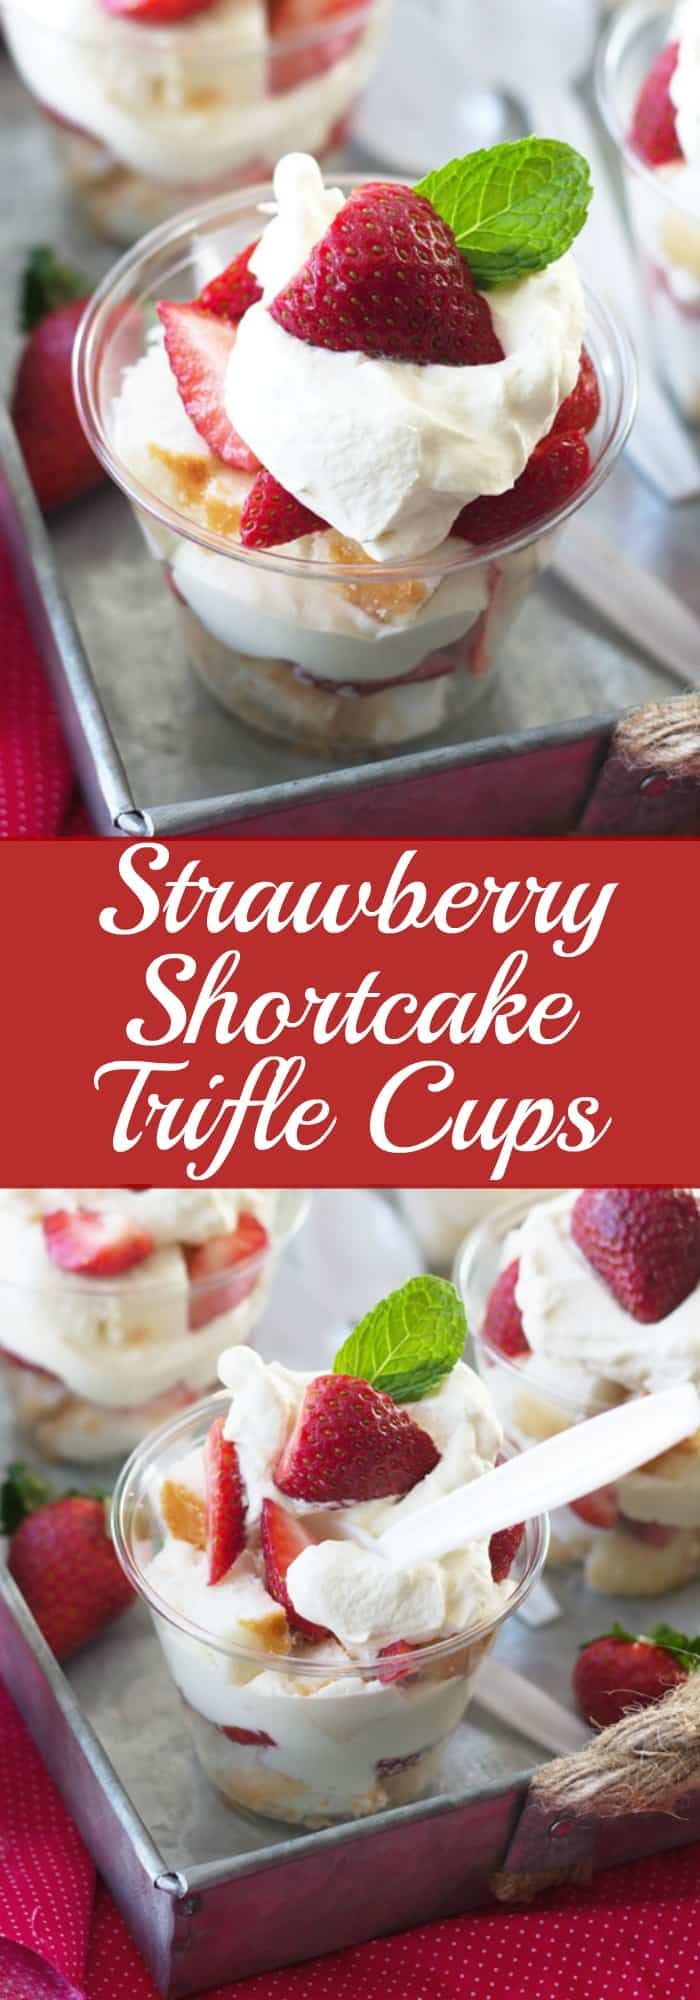 Strawberry Shortcake Trifle Cups -a quick and easy recipe for individual strawberry shortcakes! | www.countrysidecravings.com